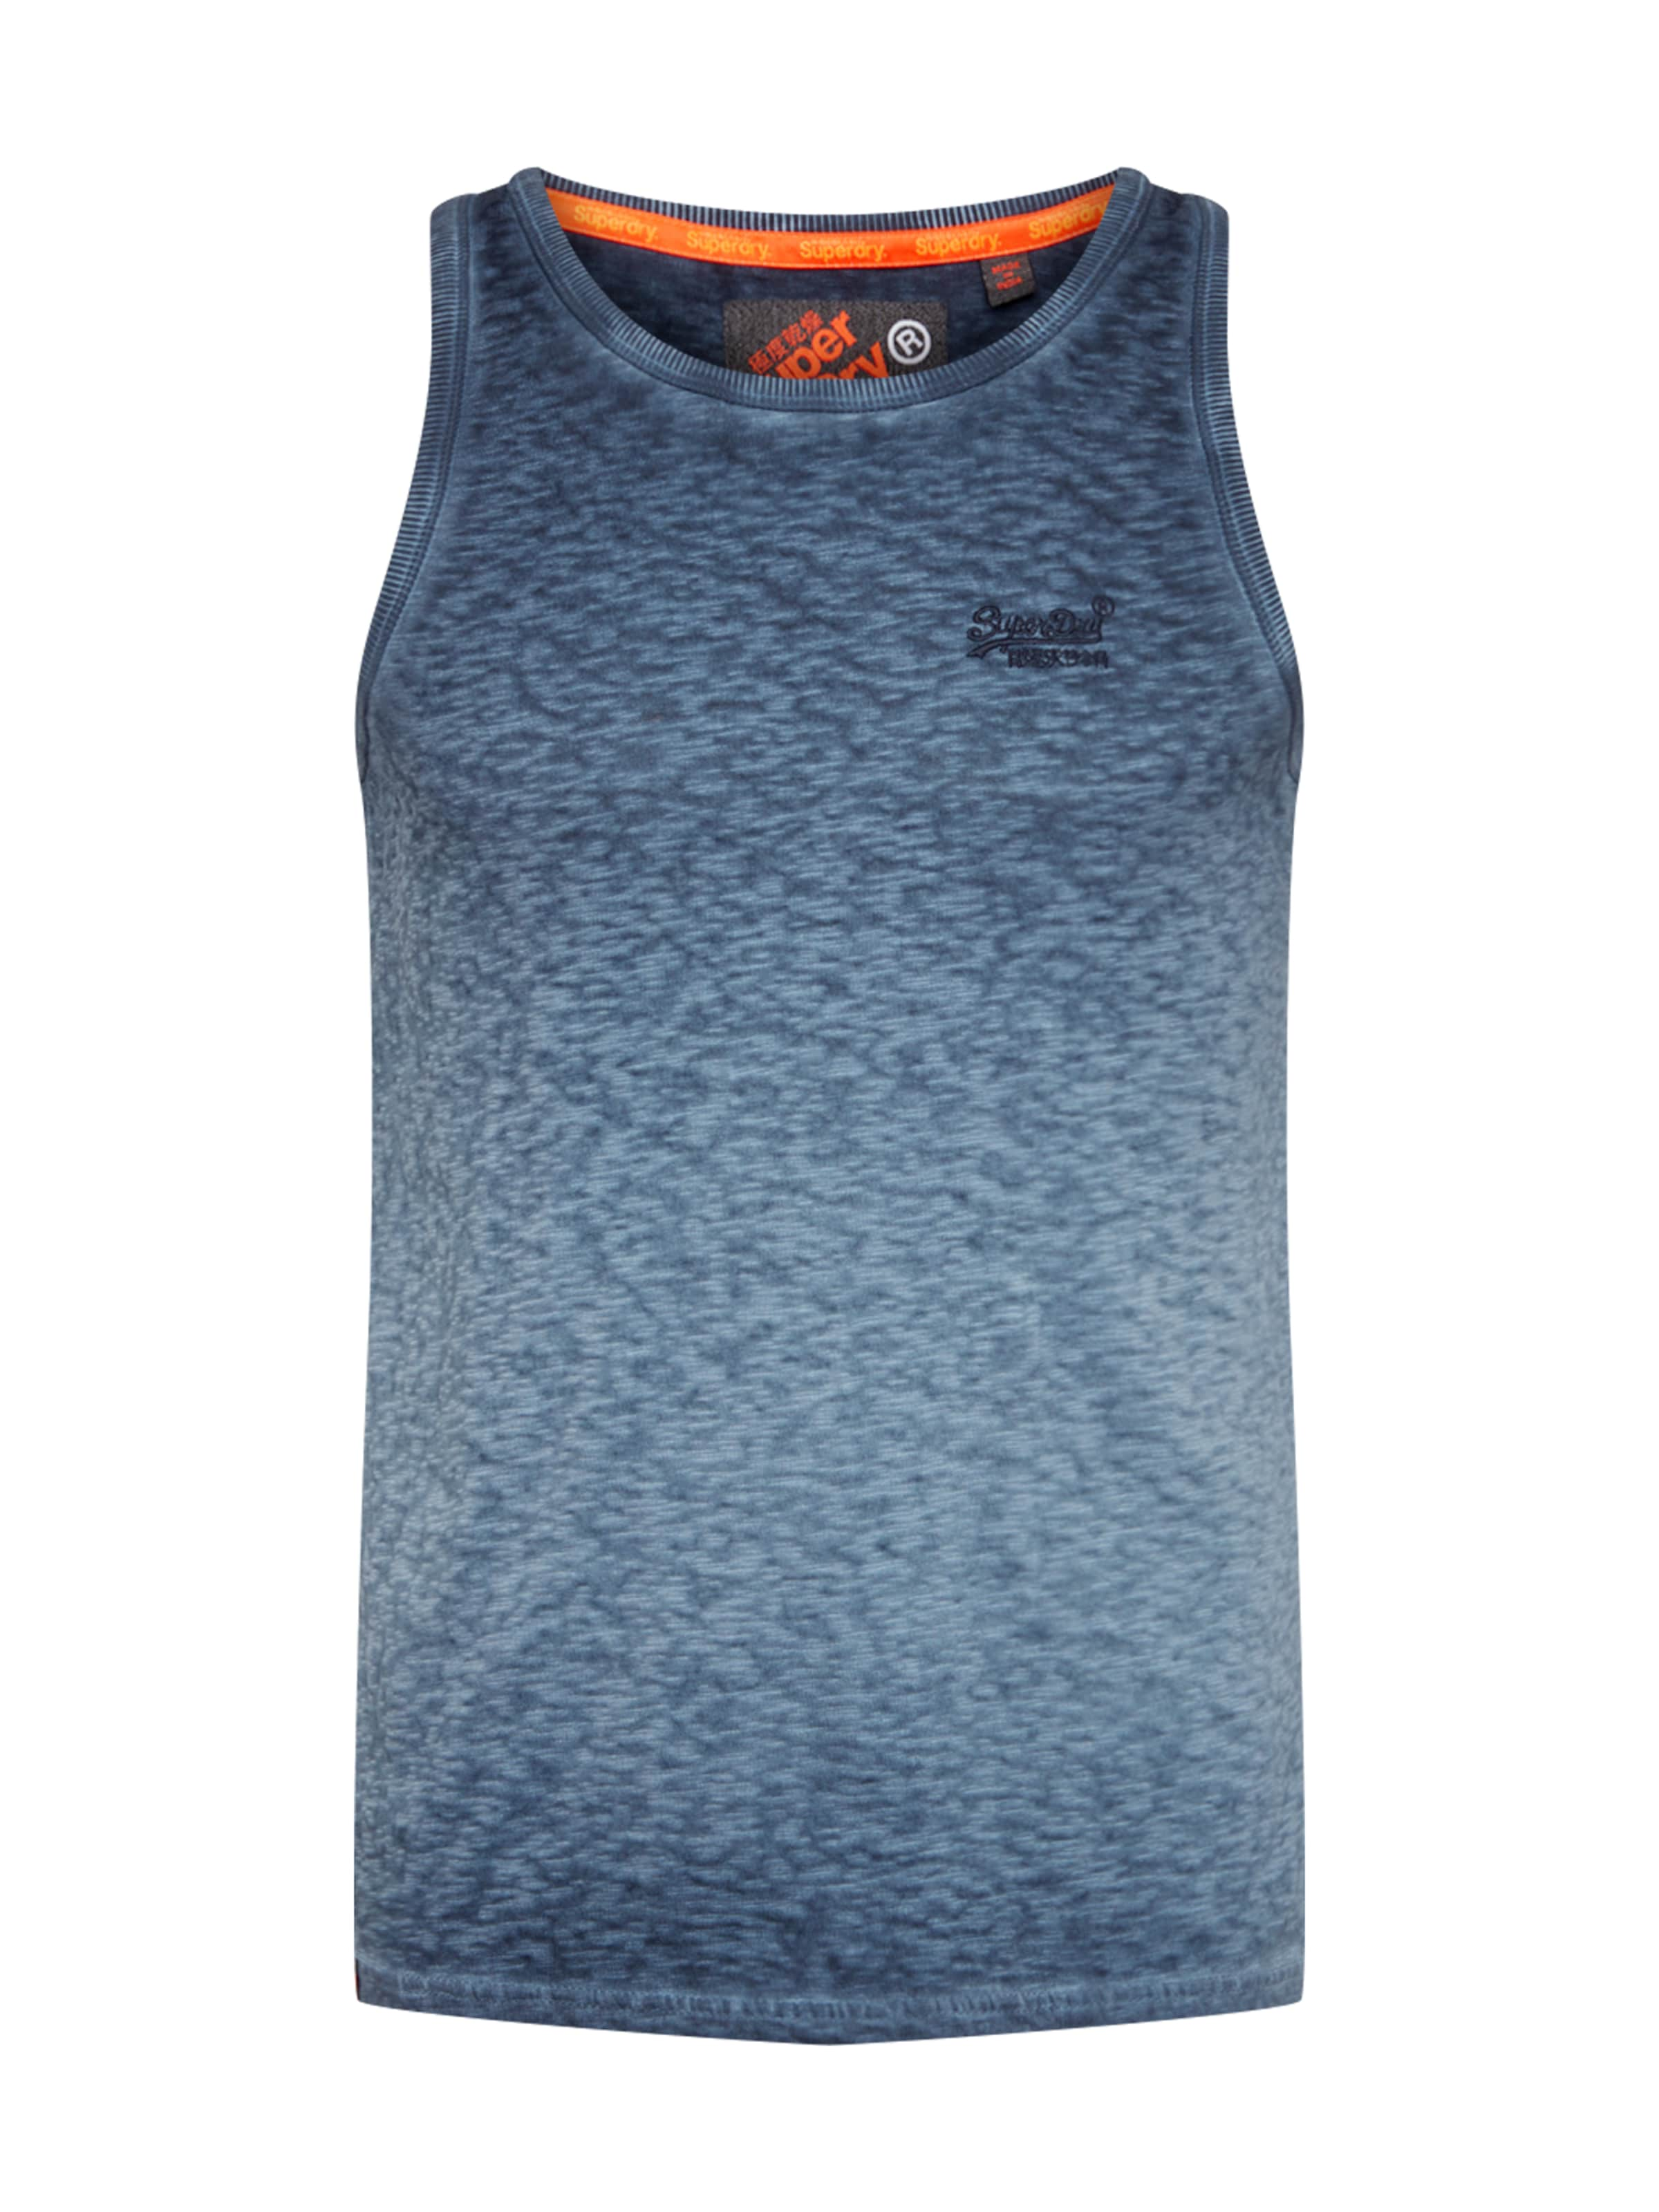 In Shirt Roller Navy Vest' Superdry 'low dxBEWQroCe